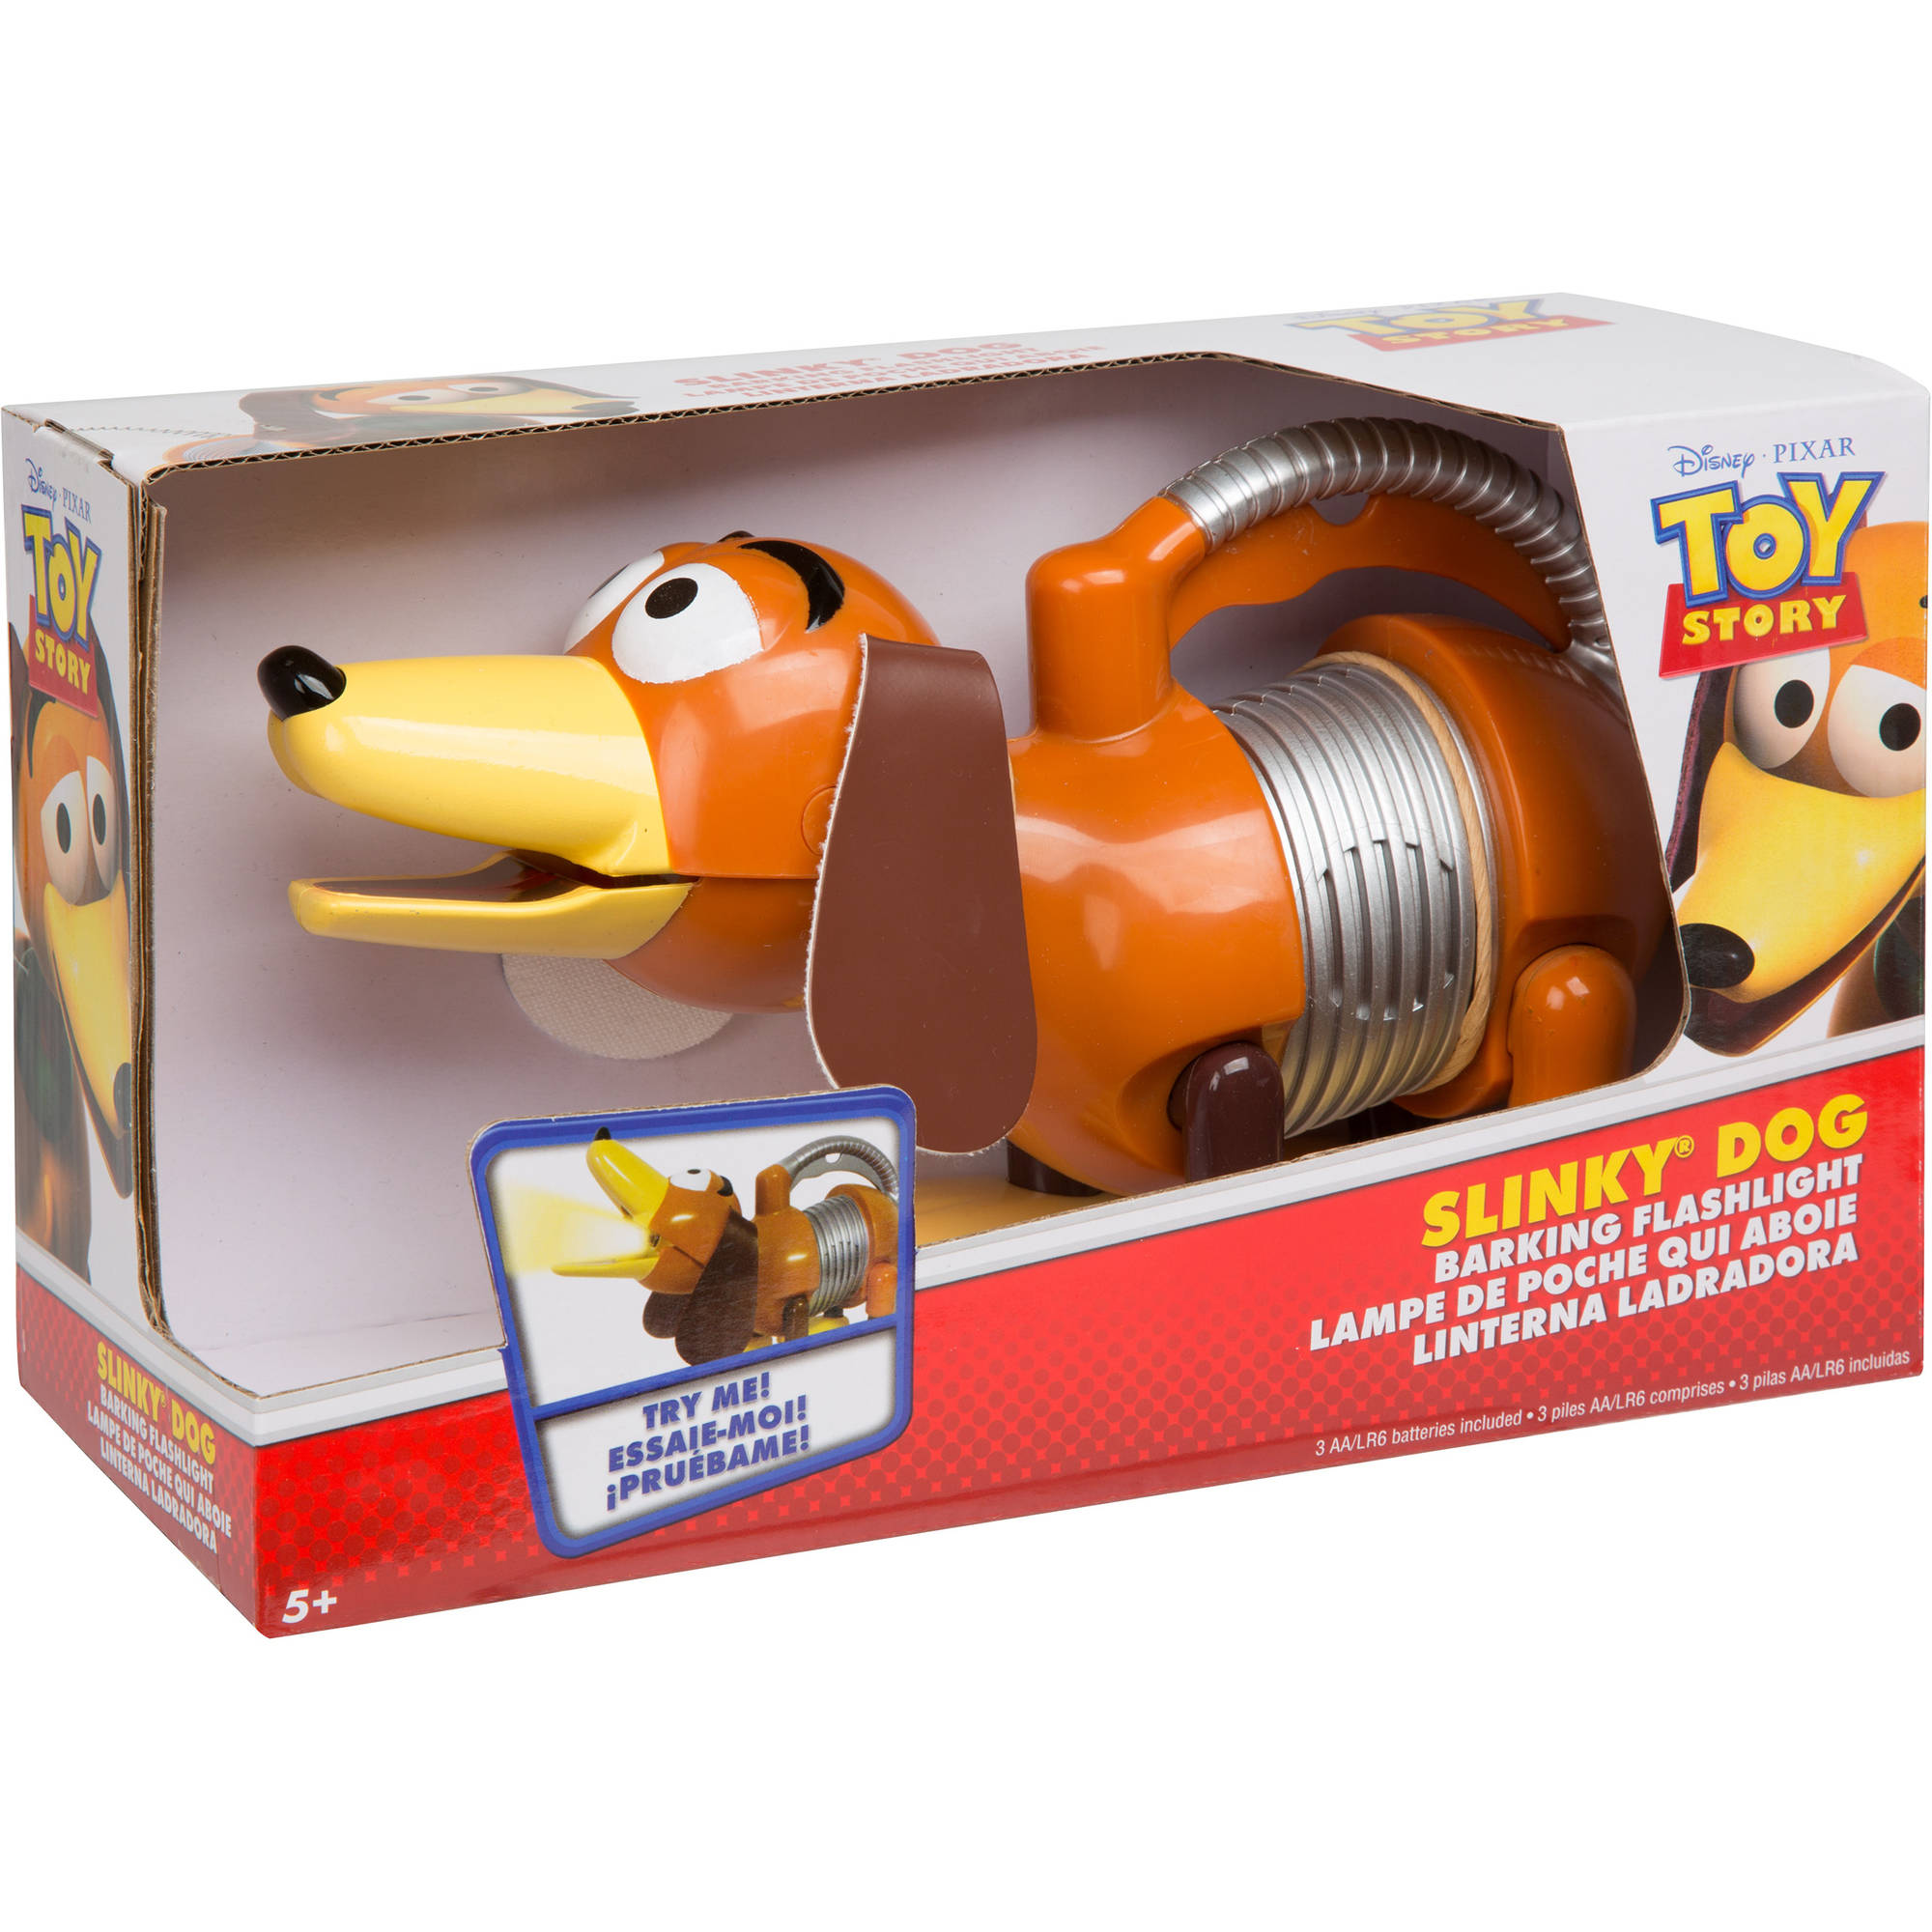 Disney Toy Story Slinky Dog Barking Flashlight